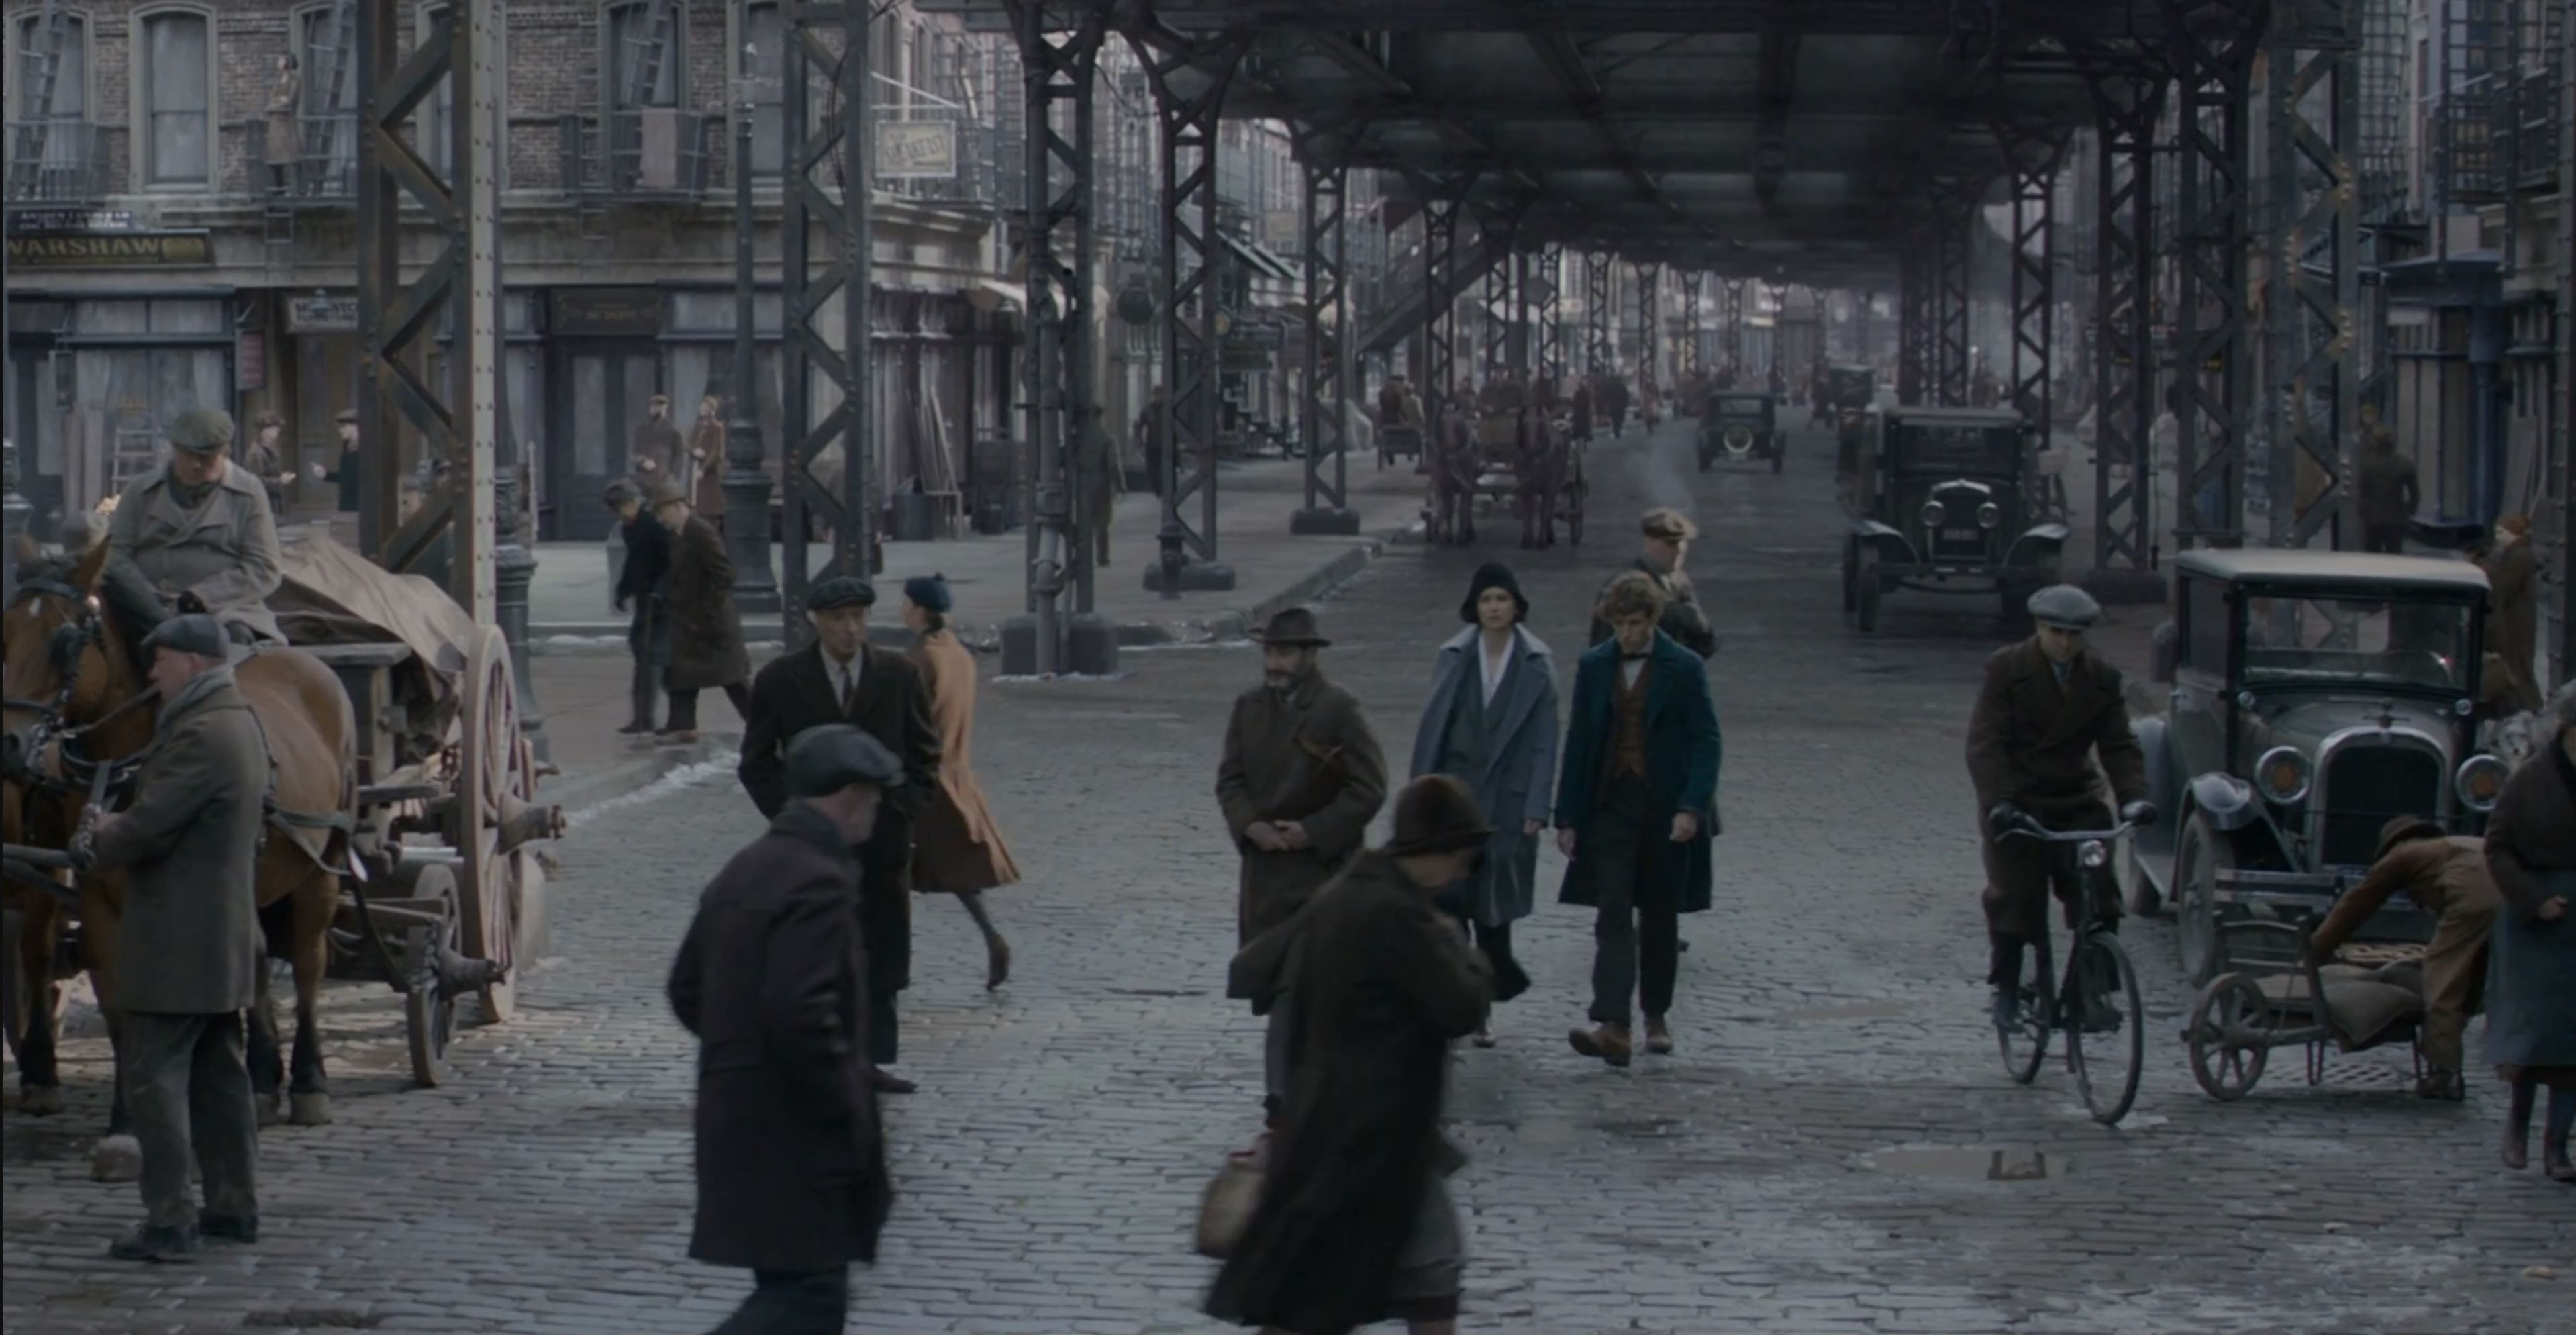 streets subway warshaw Fantastic Beasts and Where to Find Them: New York City Locations